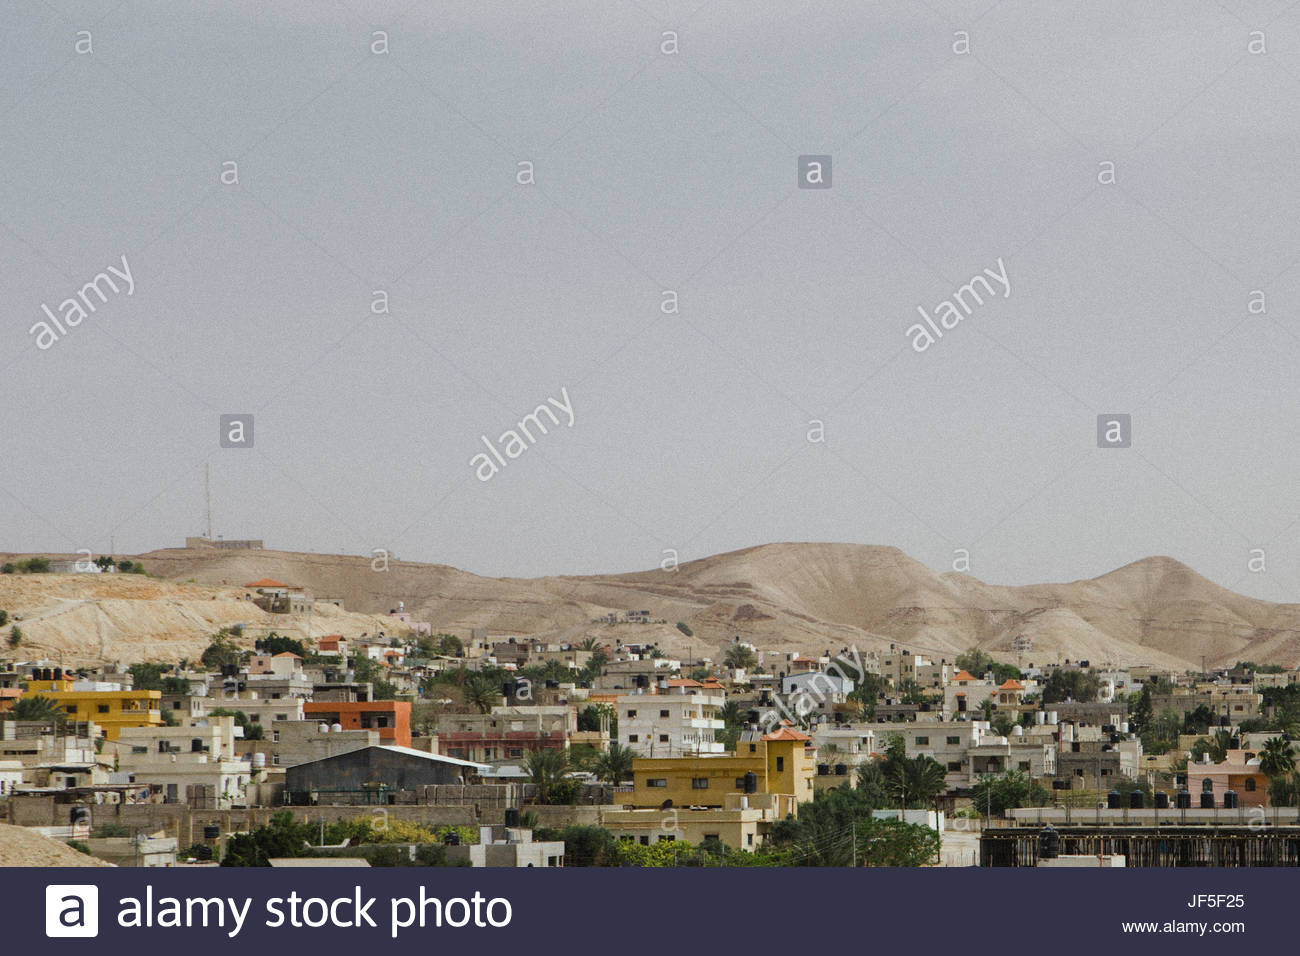 A view of housing and establishments near Jericho. - Stock Image